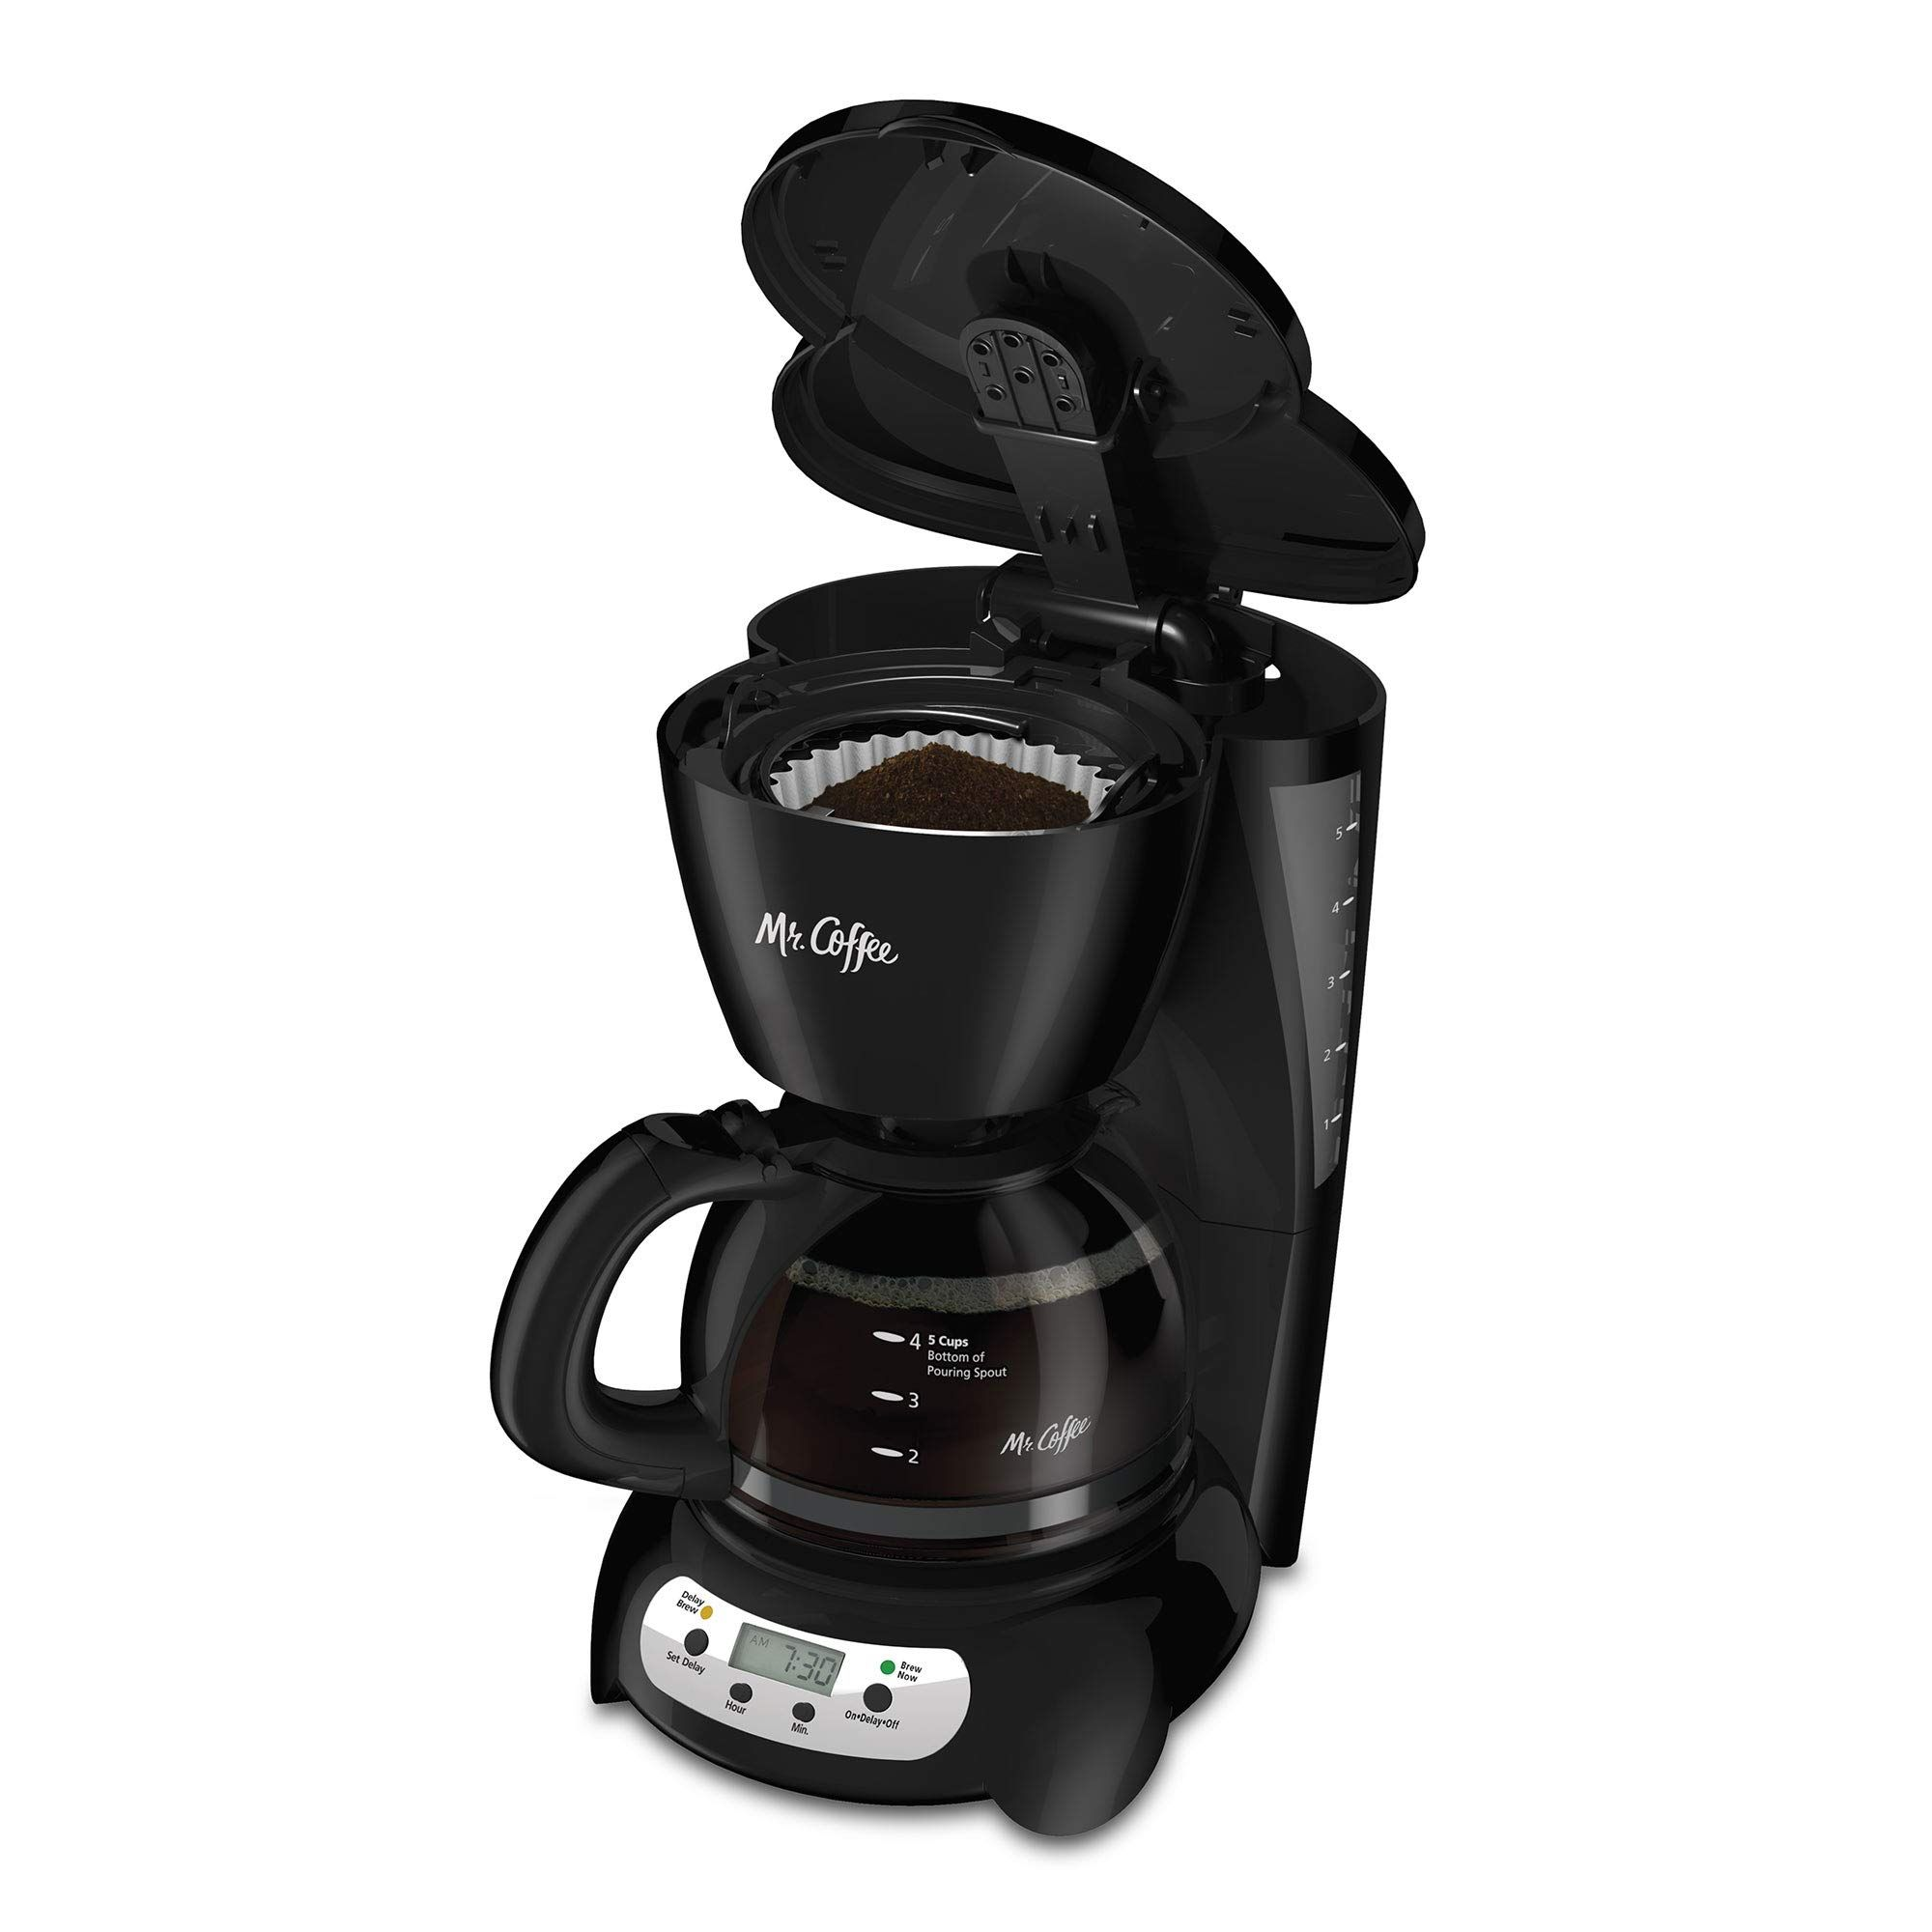 Mr. Coffee Programmable Drip Coffee Maker 5 Cup Black